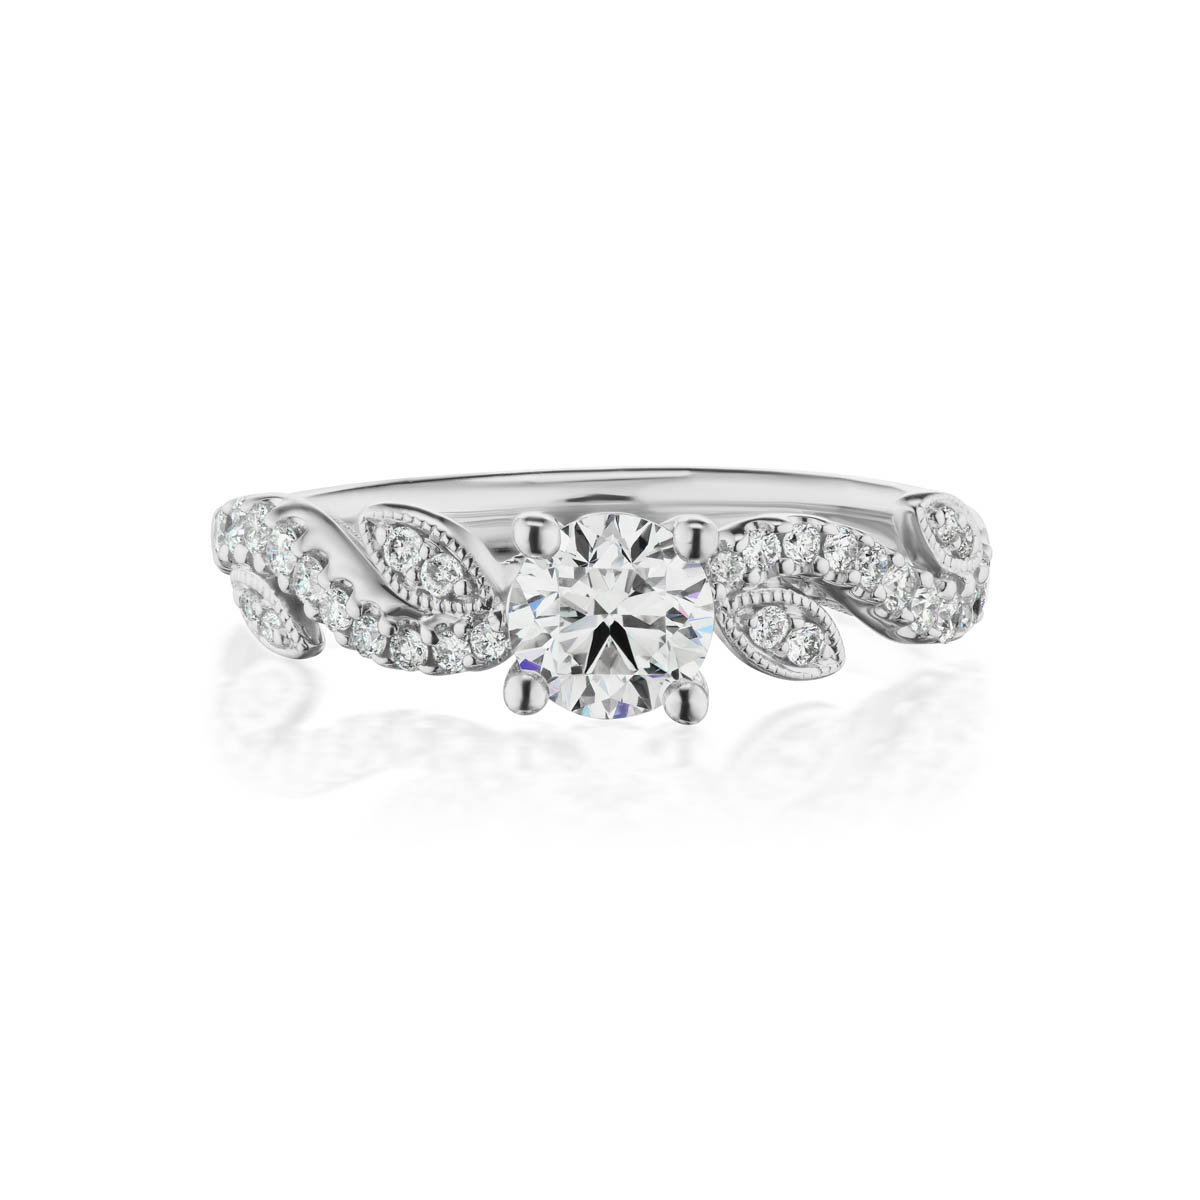 Gratia Diamond ring, White Gold